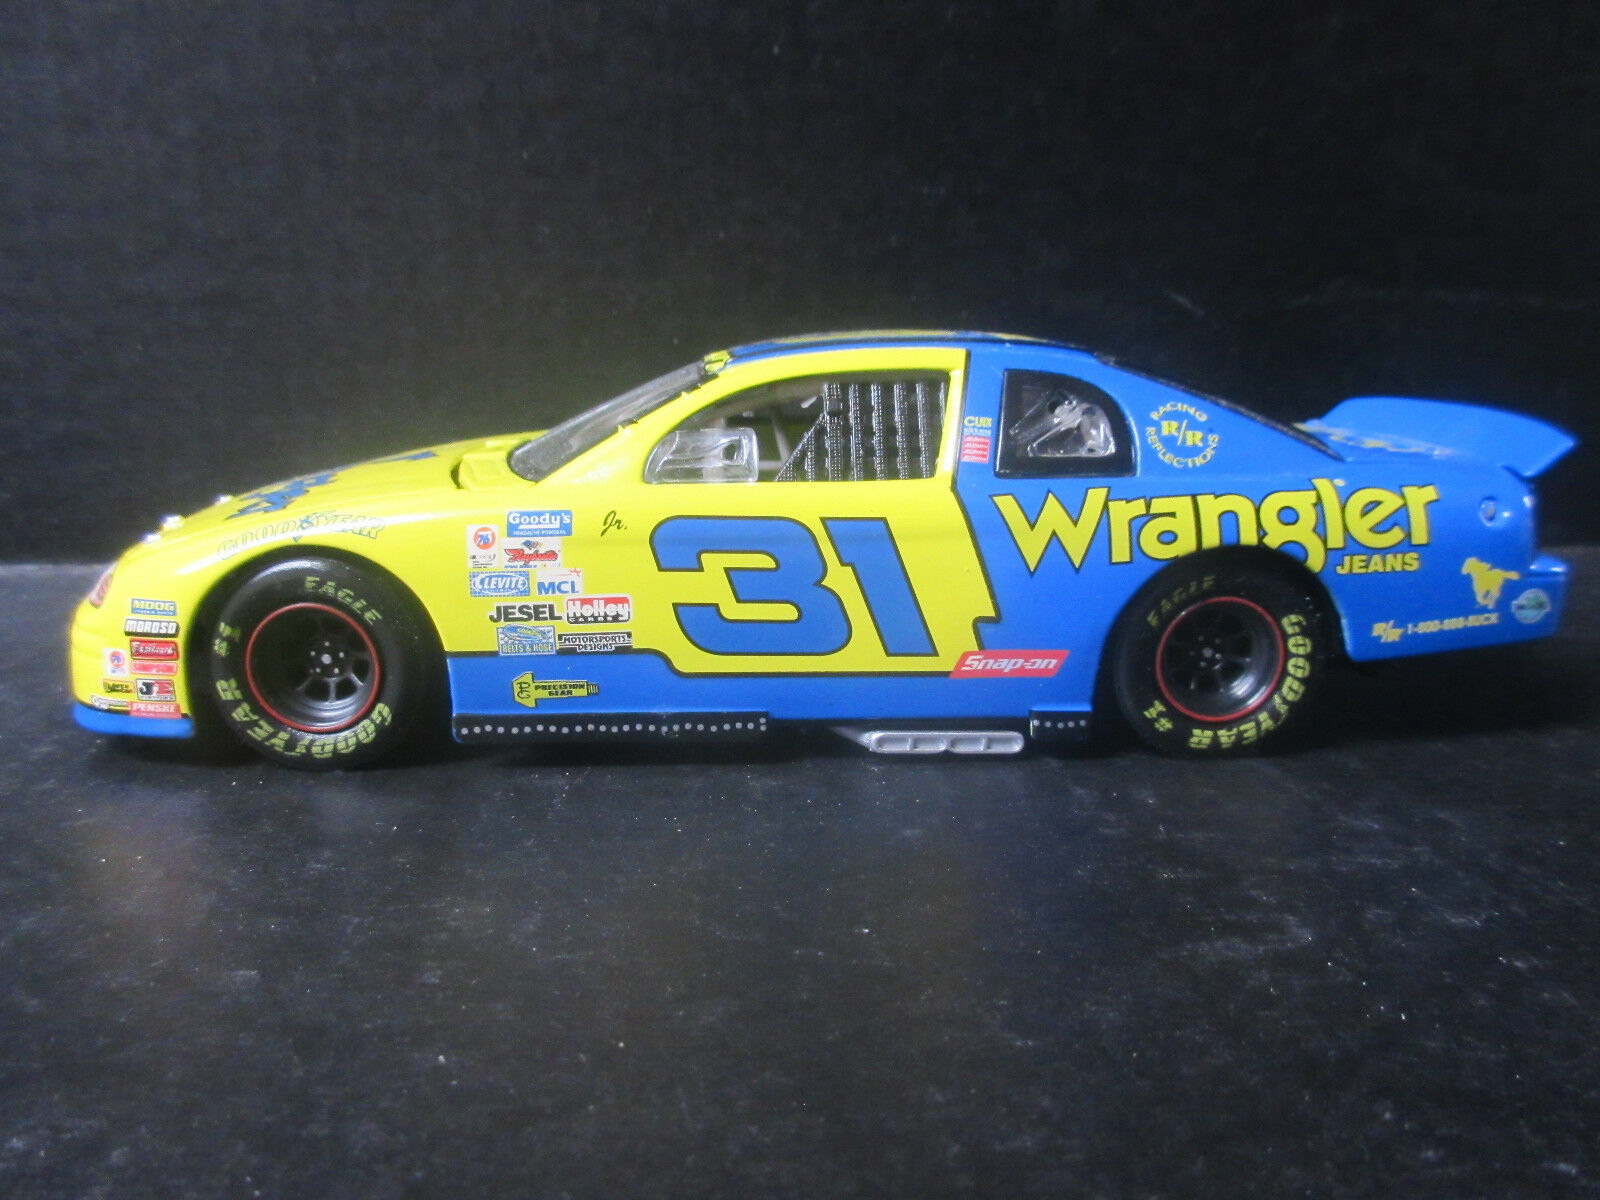 1997 acción Dale Earnhadt Wrangler Jr. edición Limitada -- 1 24th Stock Car